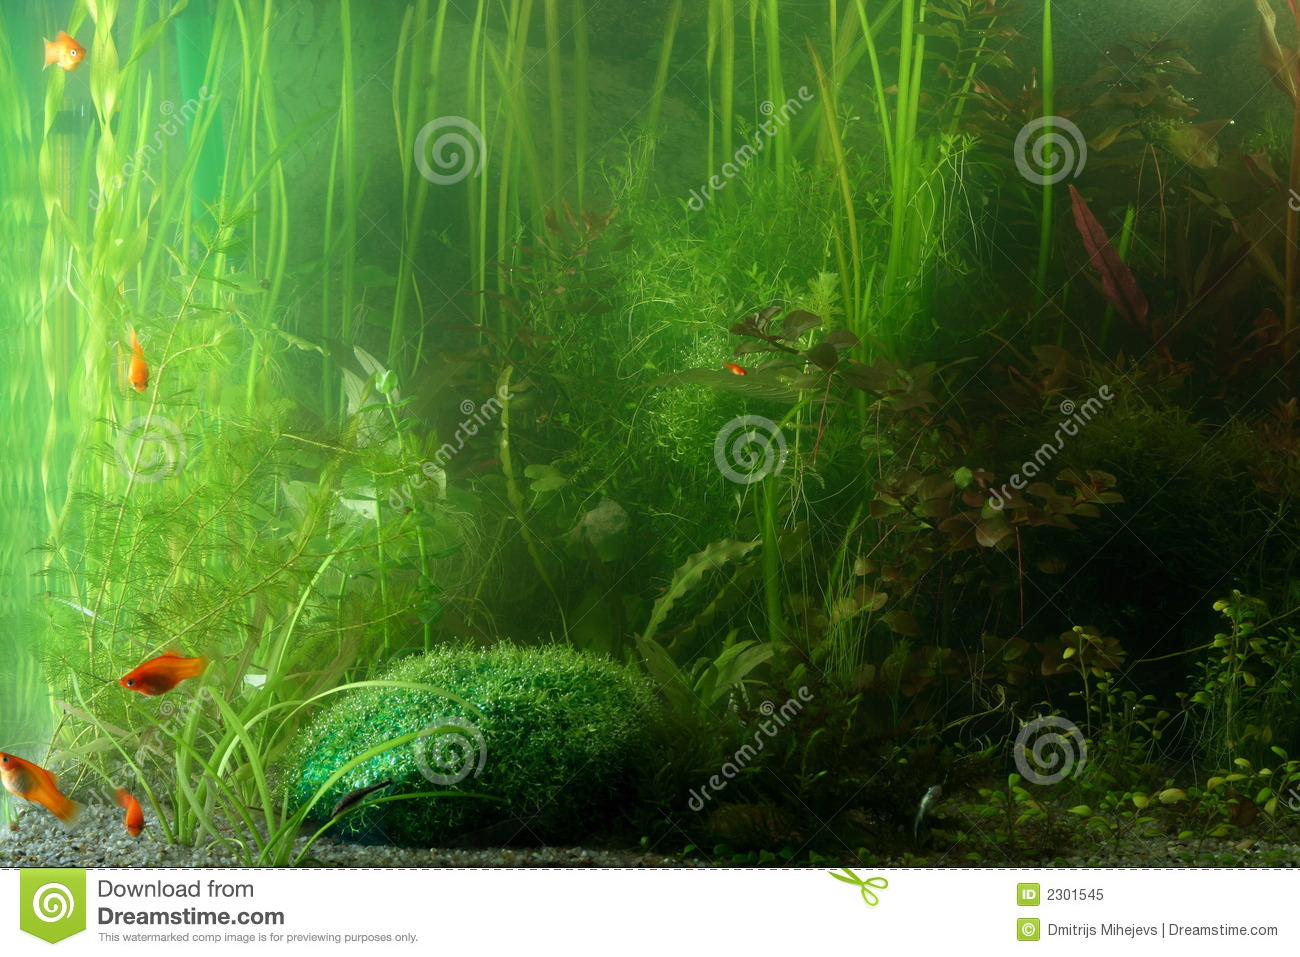 Aquarium landscape royalty free stock photo image 2301545 Aquarium landscape